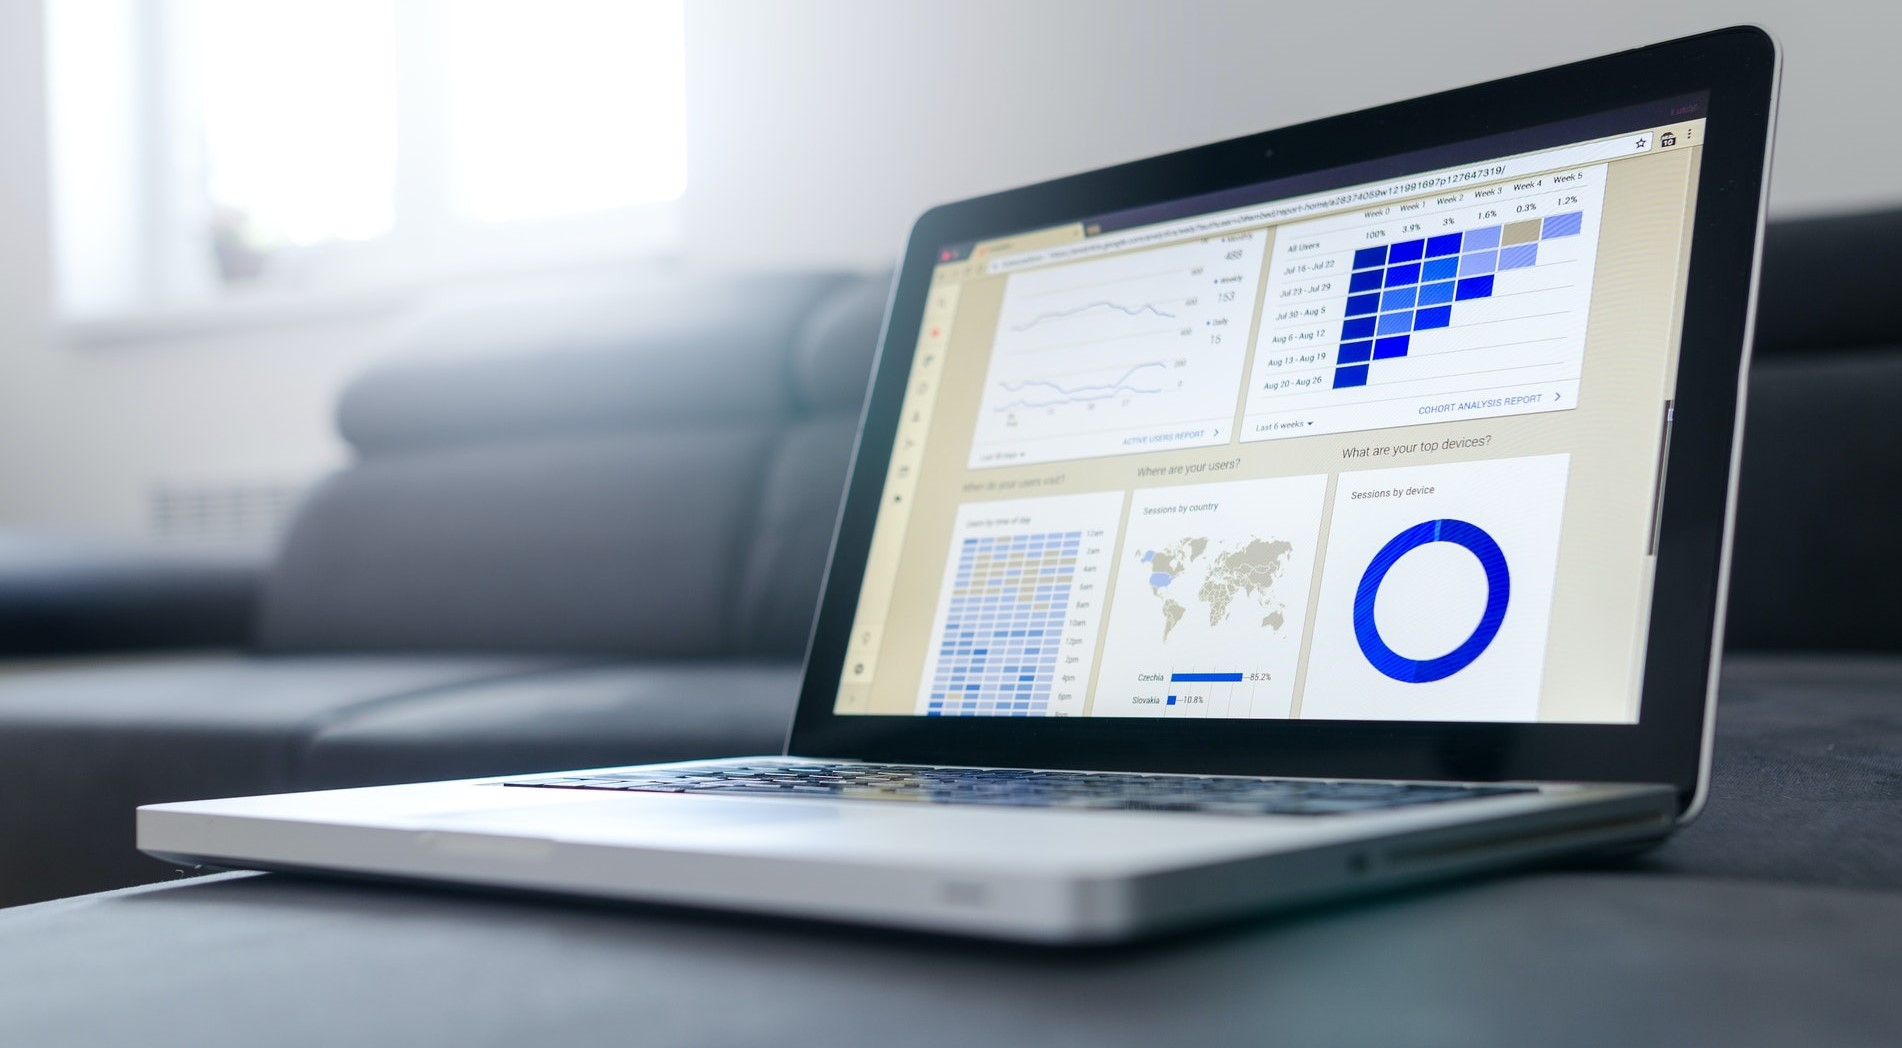 Image of a laptop on a desk with an image of a graph on the screen